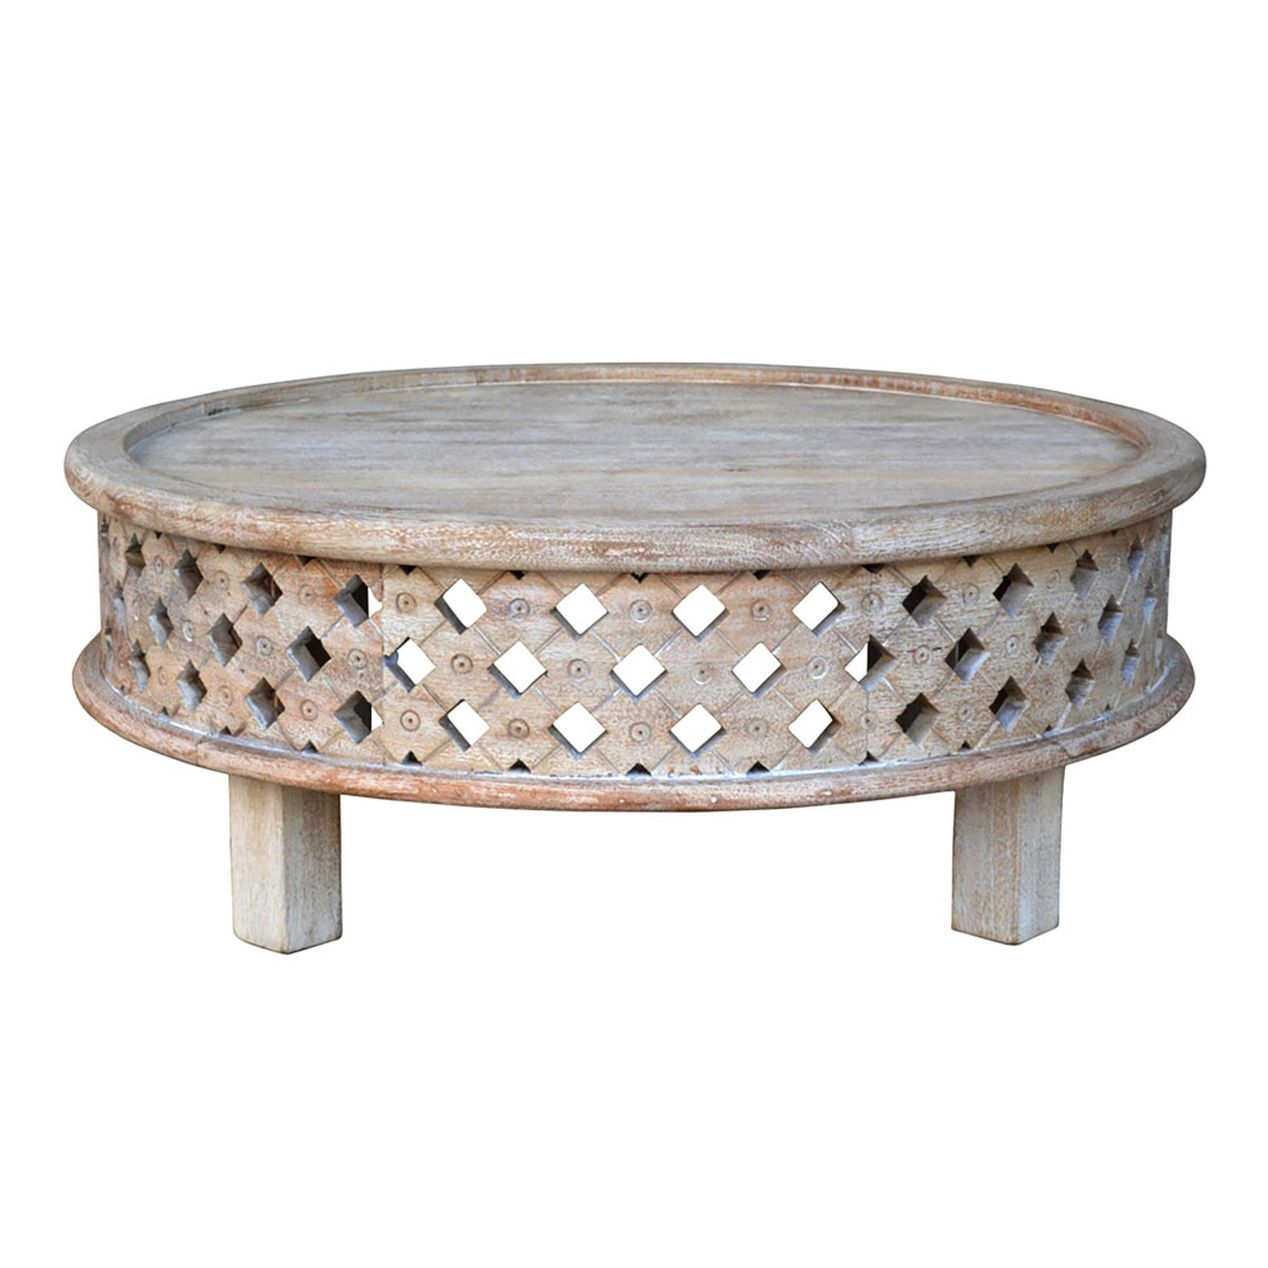 Bargu Mango Wood Round Coffee Table   At Home